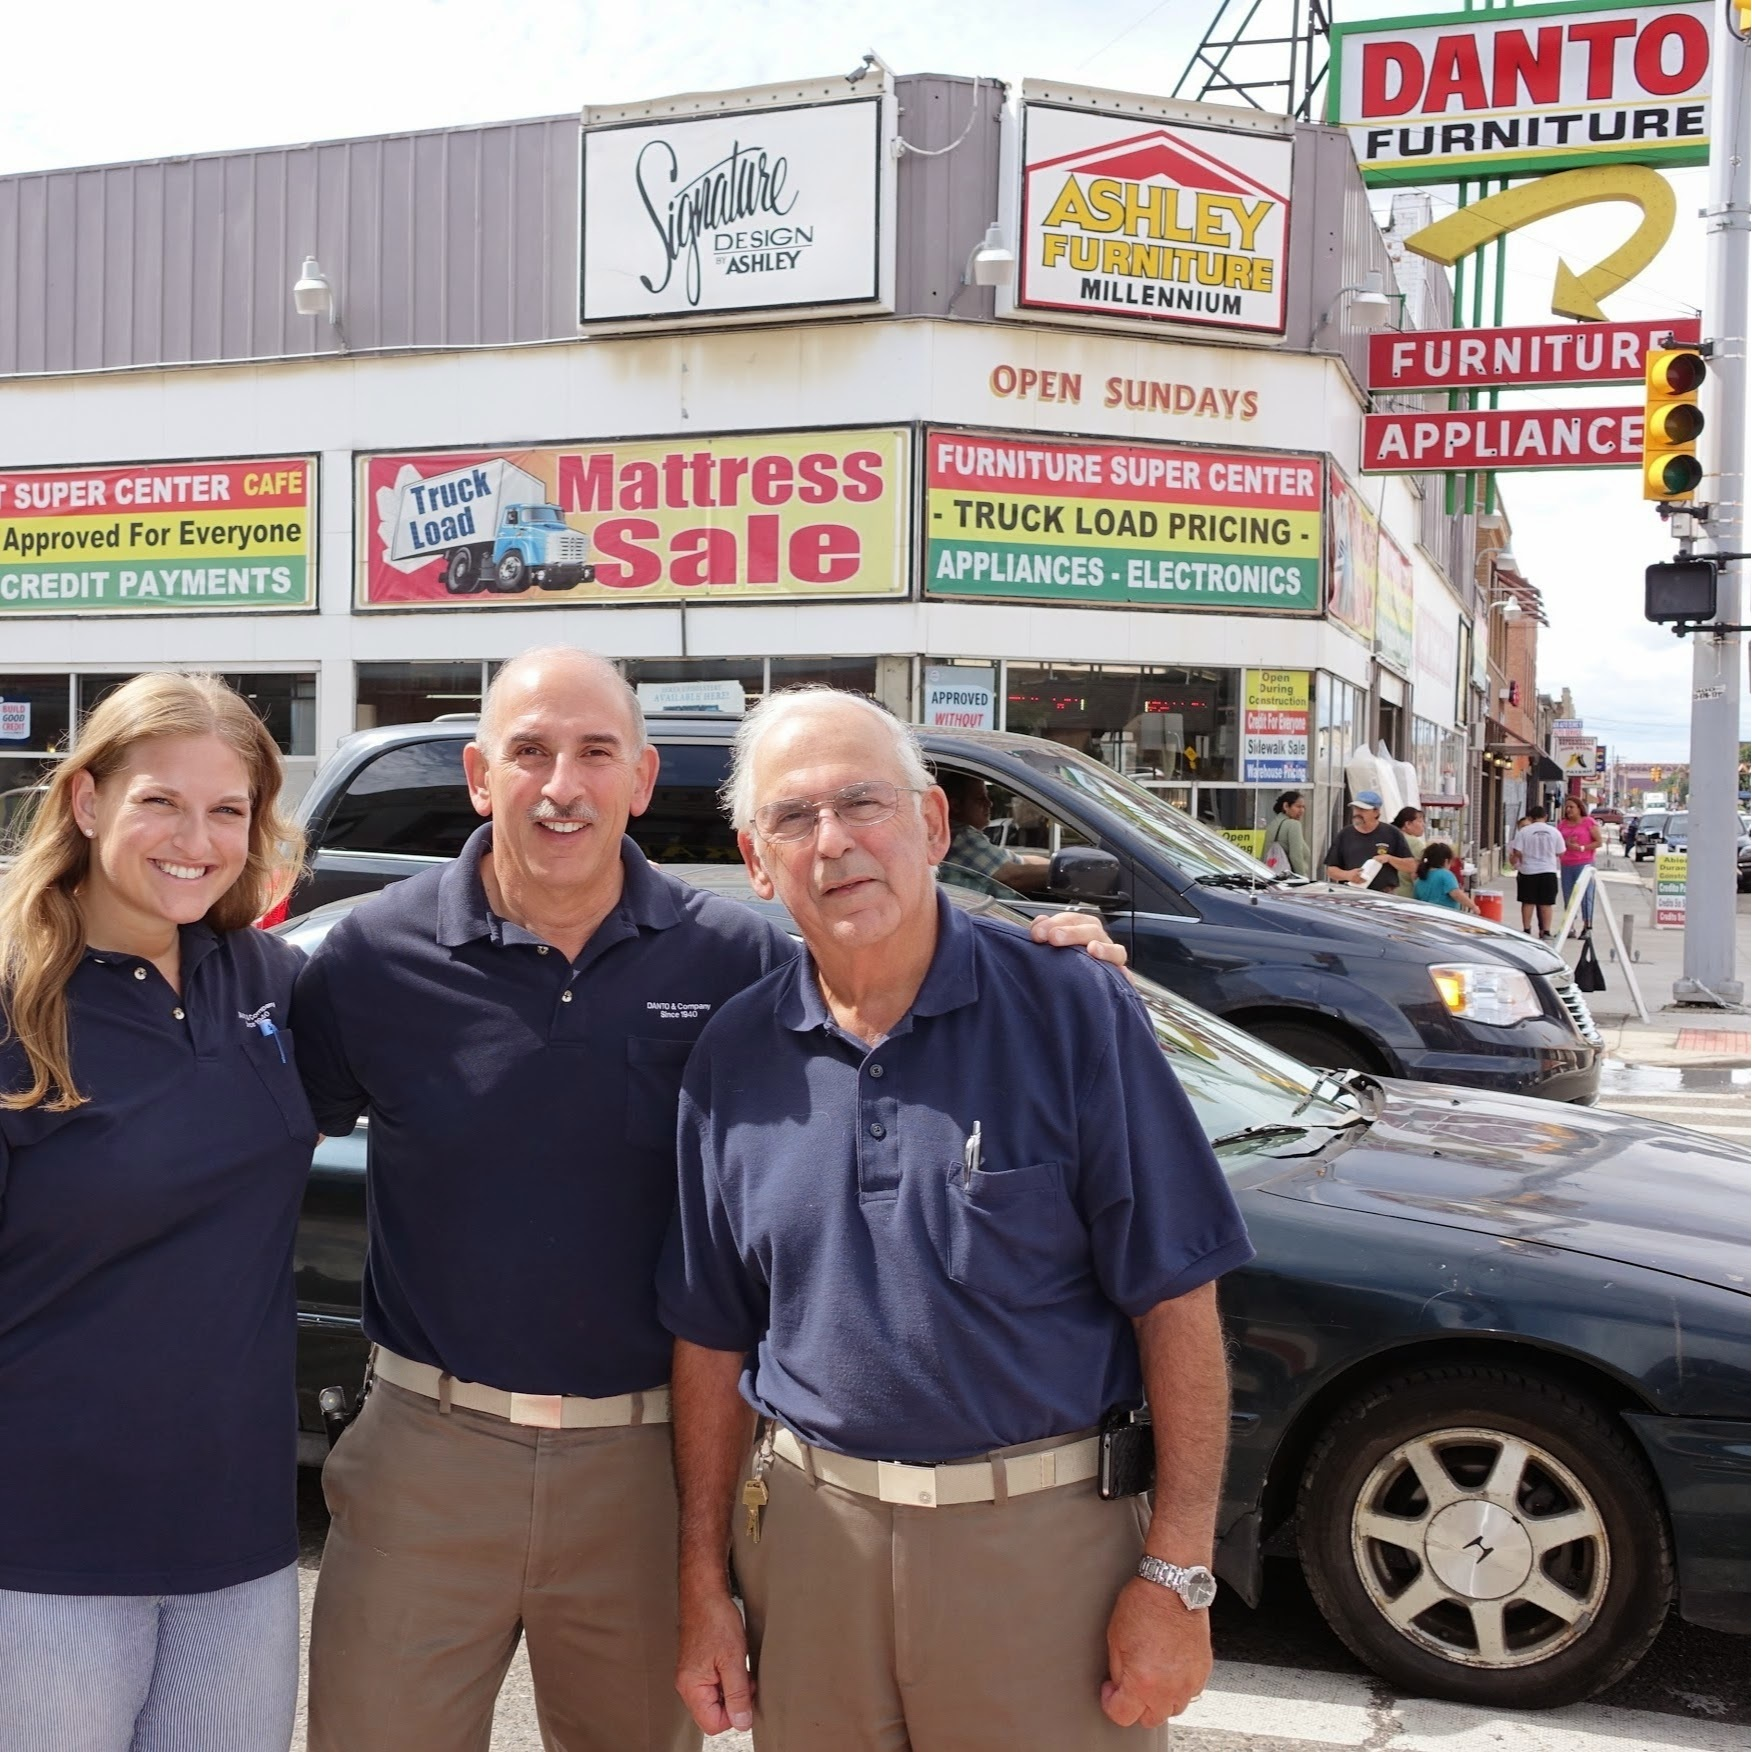 Danto Furniture Clearance & Mattress Center